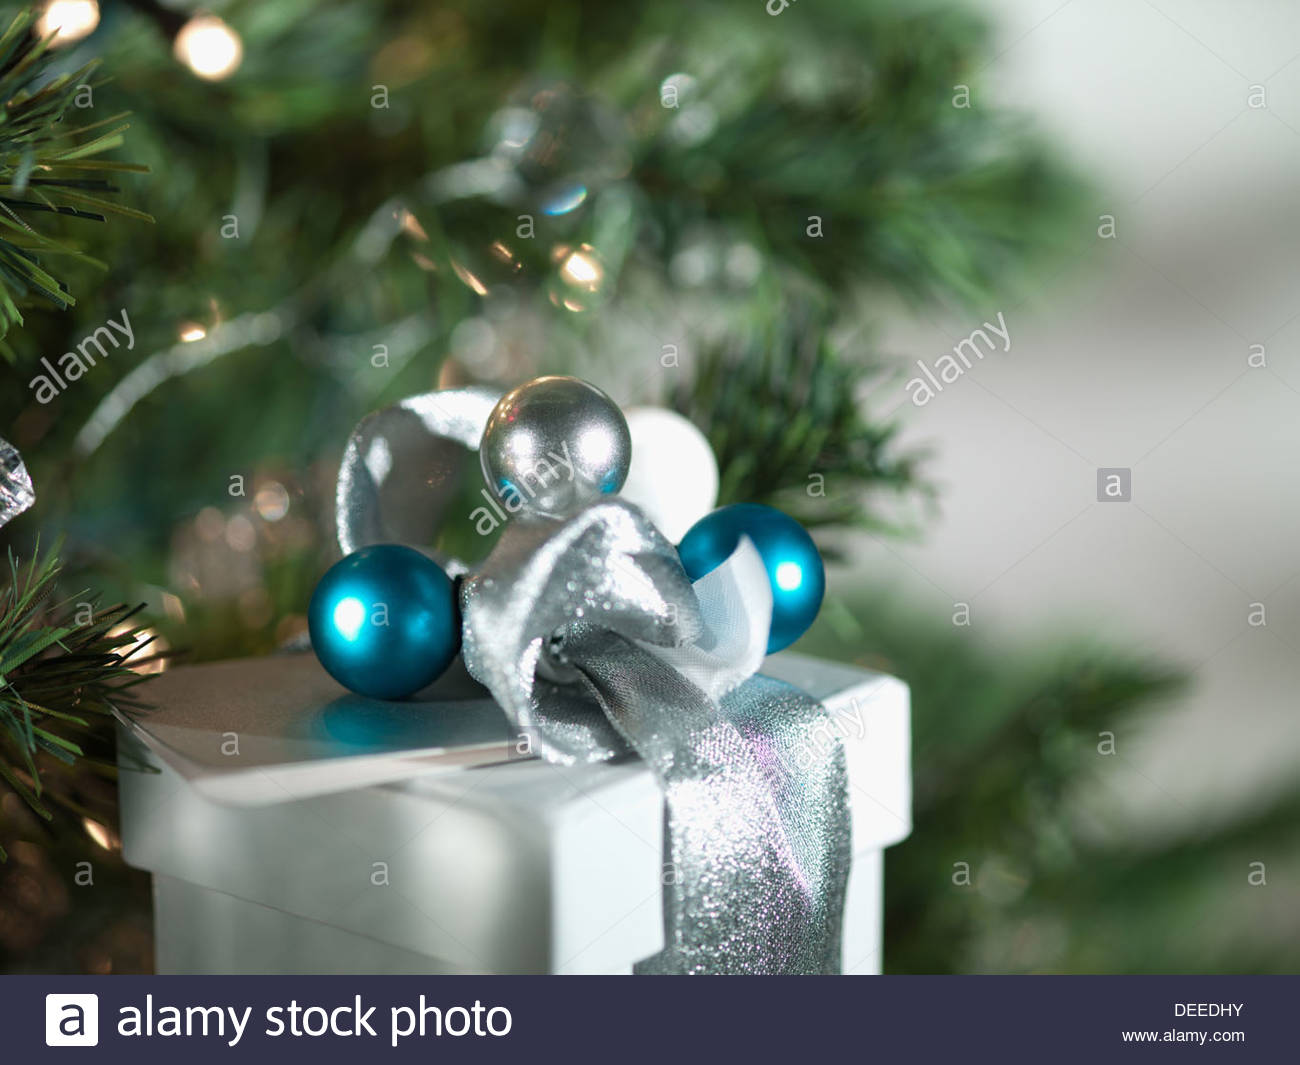 Christmas gifts with silver ribbon and wrapping - Stock Image